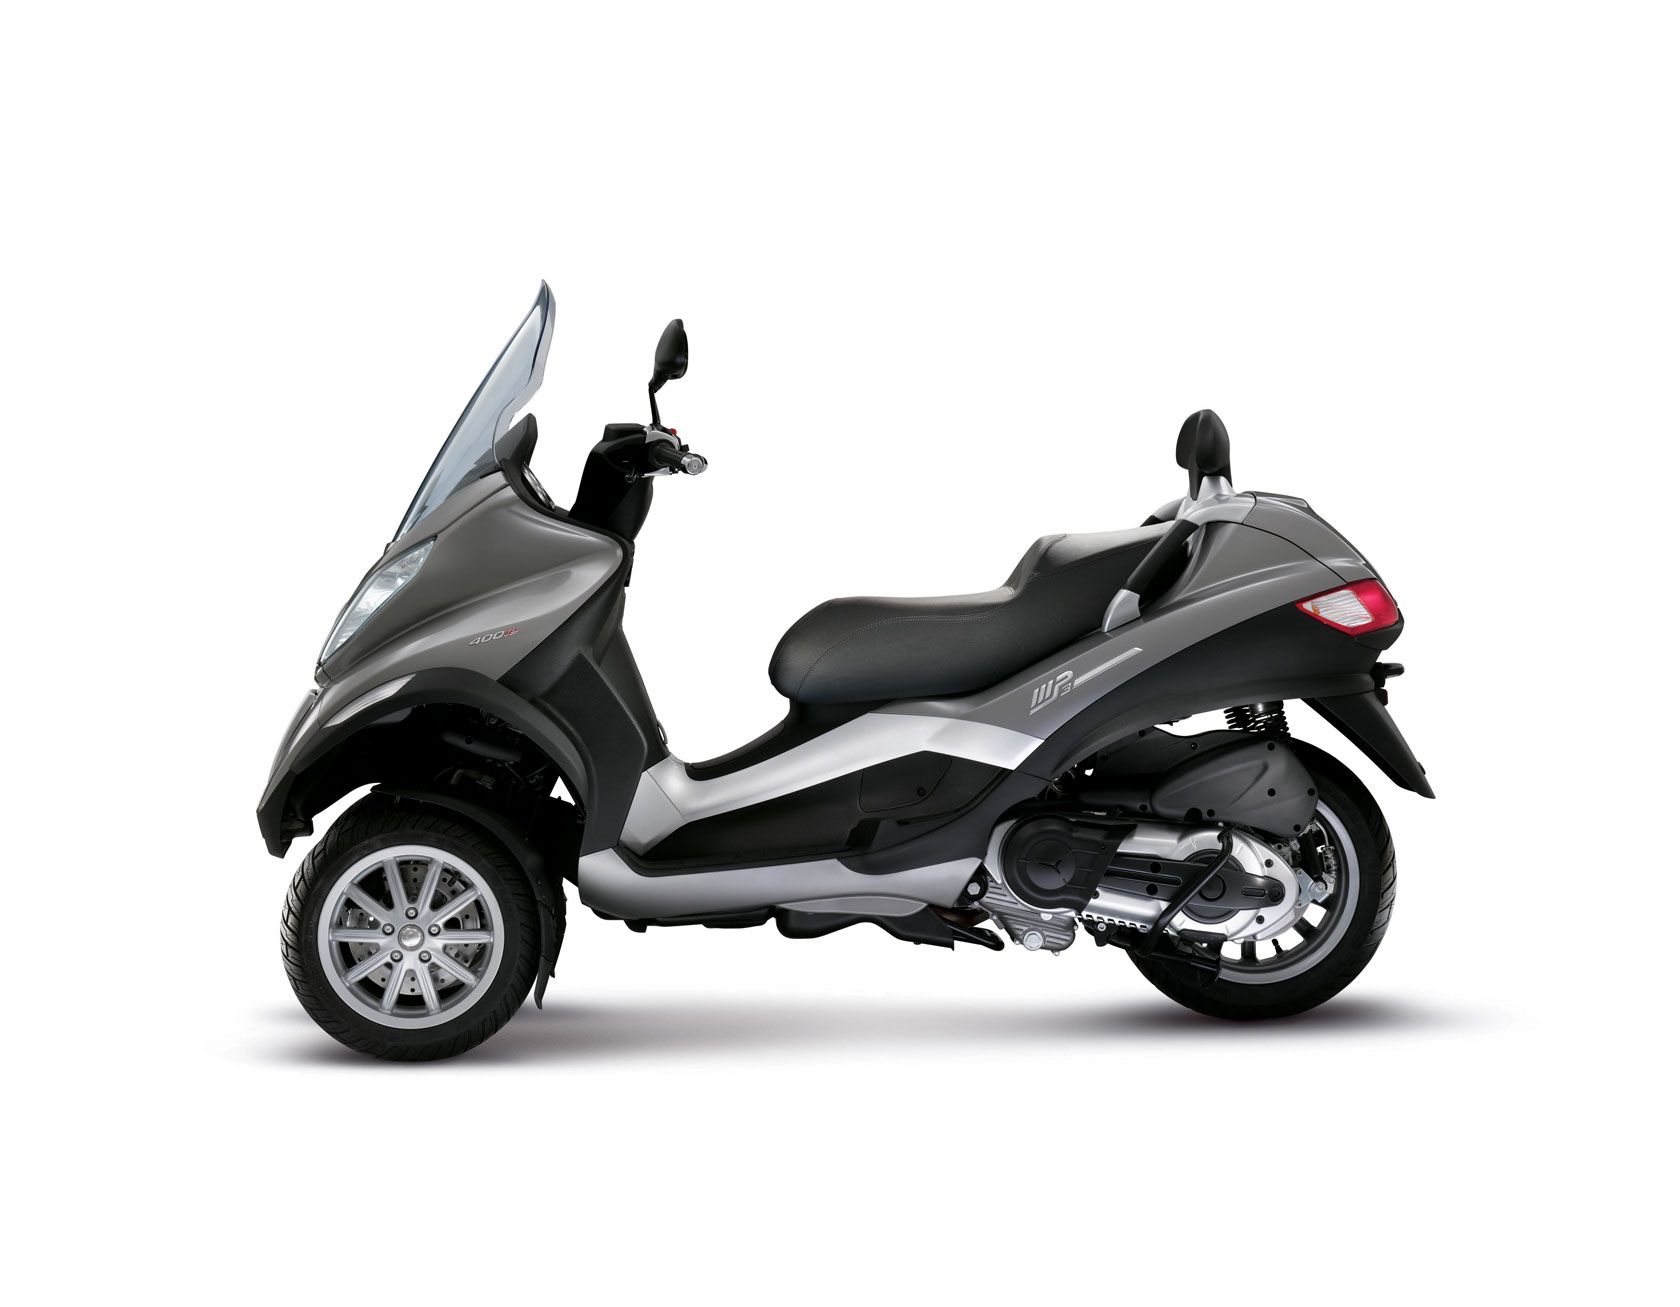 Piaggio MP3 400 2011 images #120680